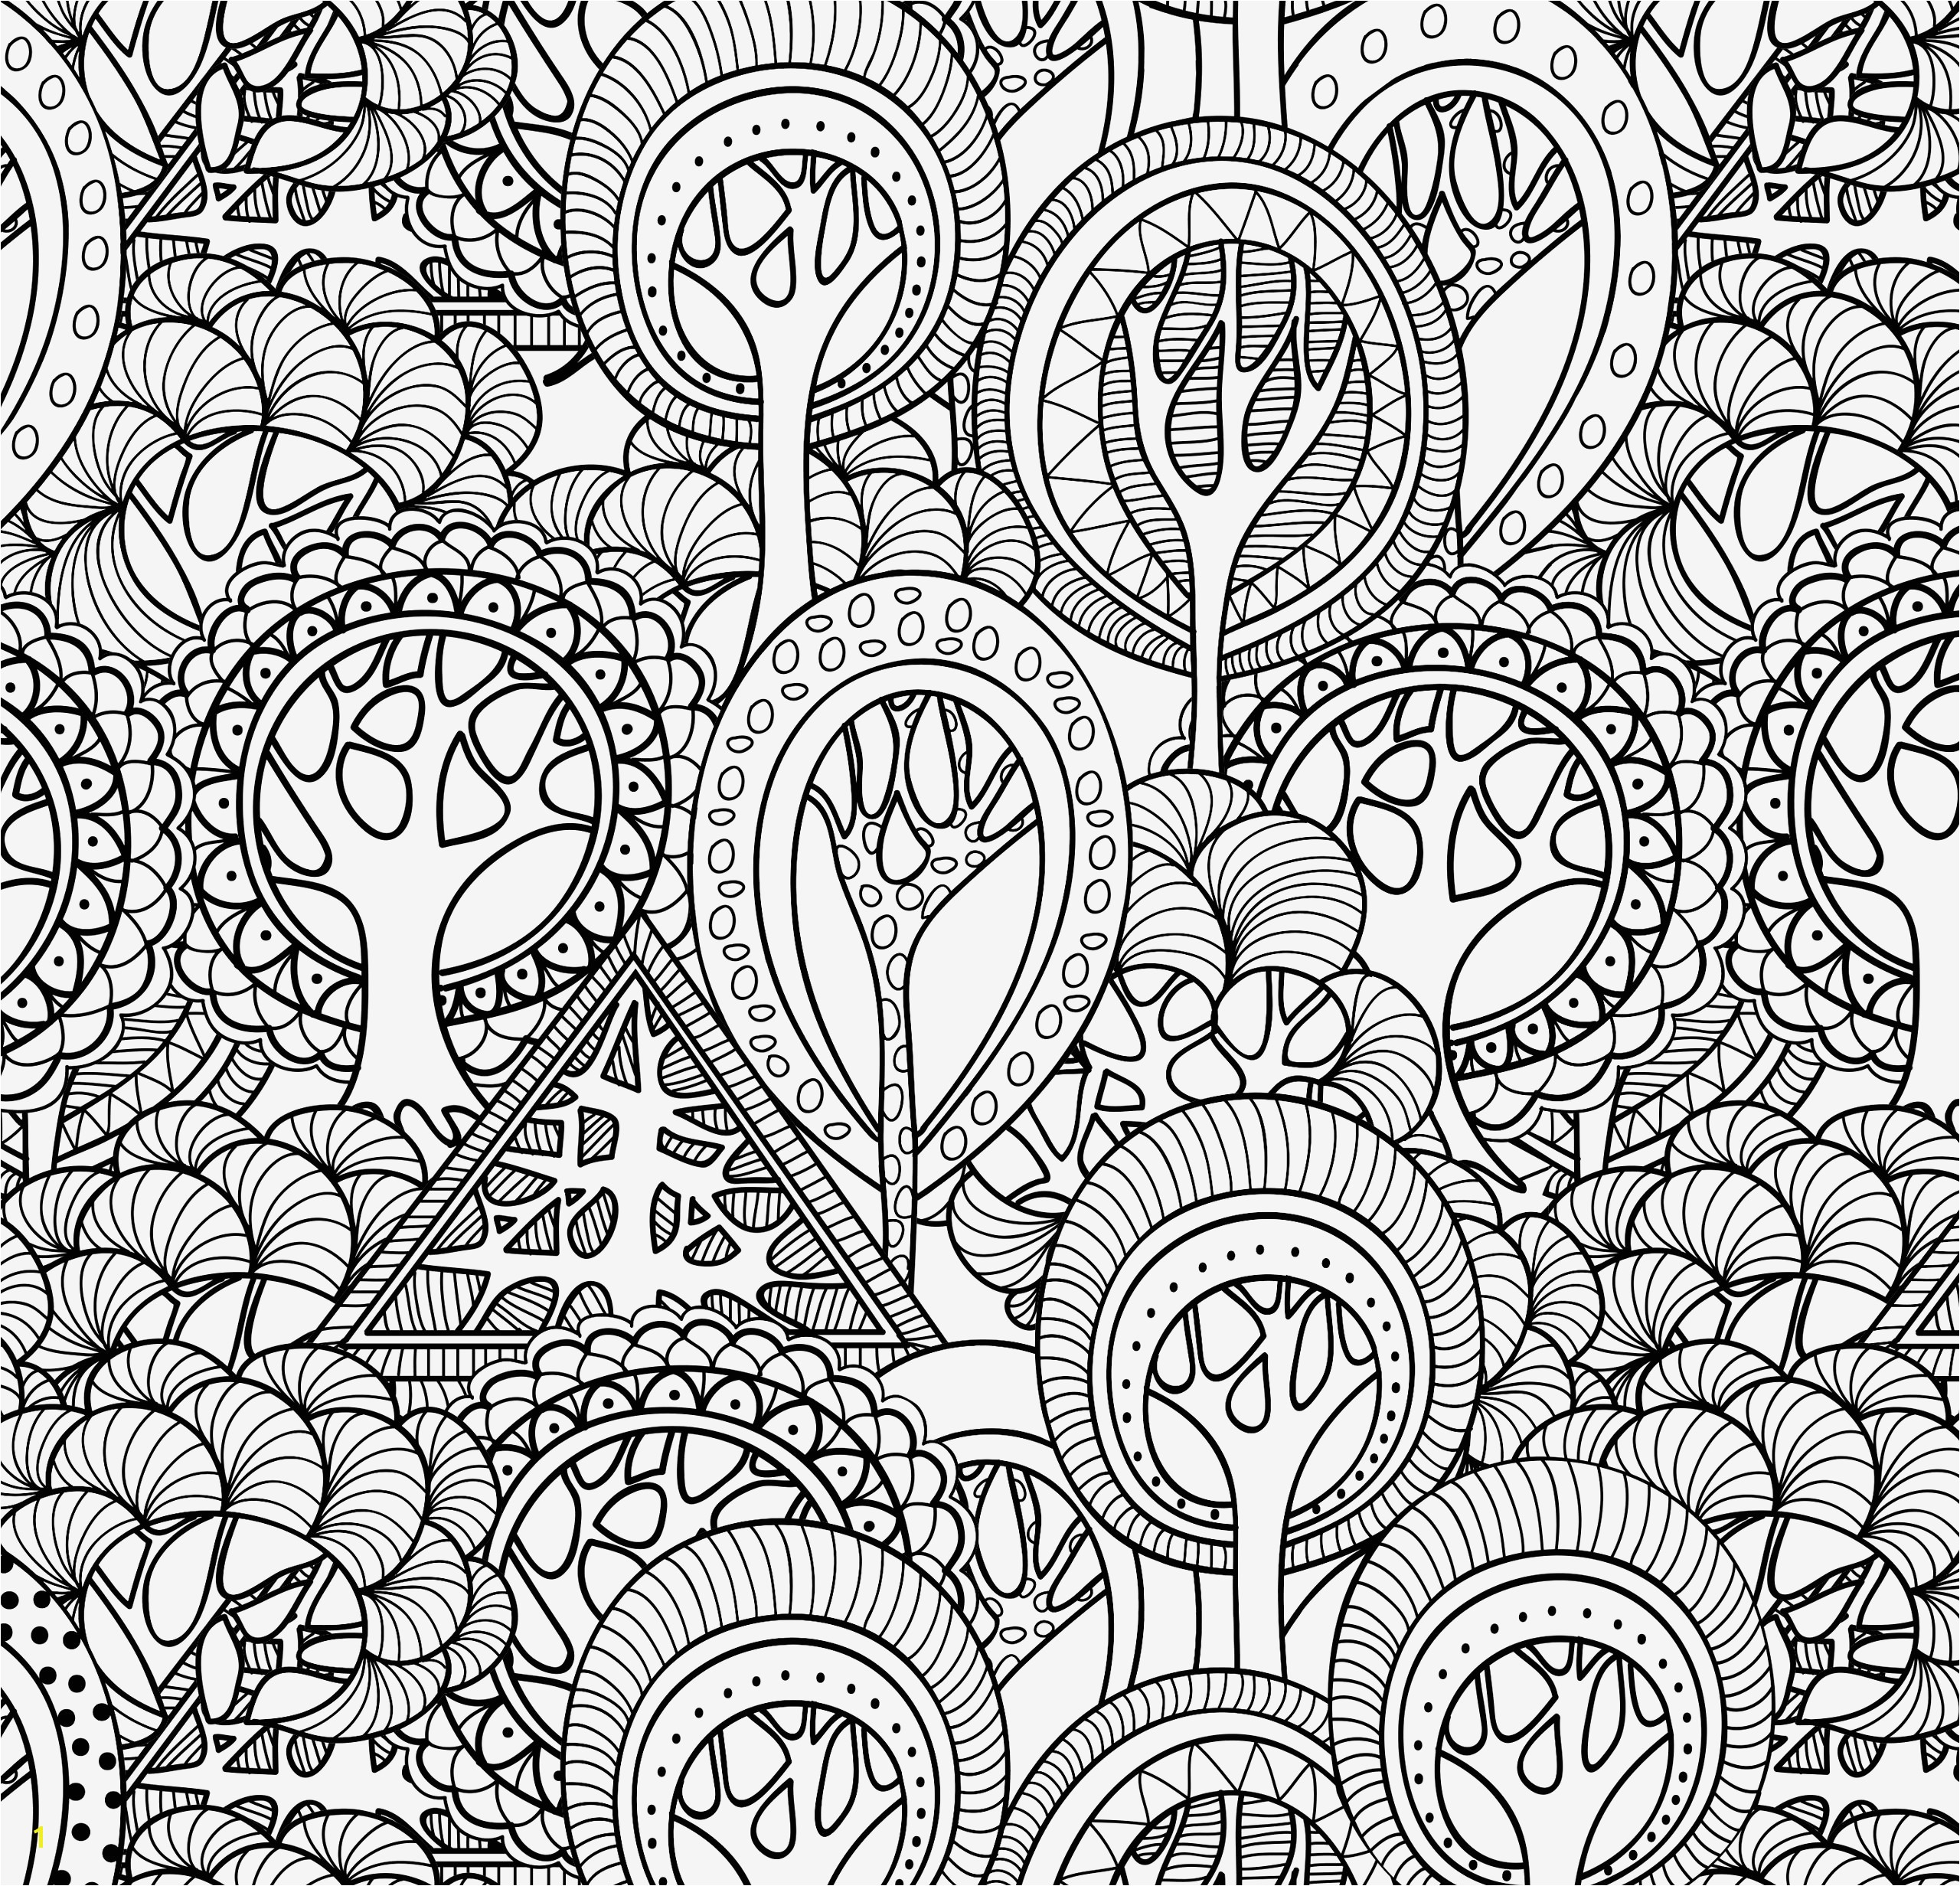 Winter Adult Coloring Pages Love Coloring Pages for Adults Luxury Best Coloring Page for Adult